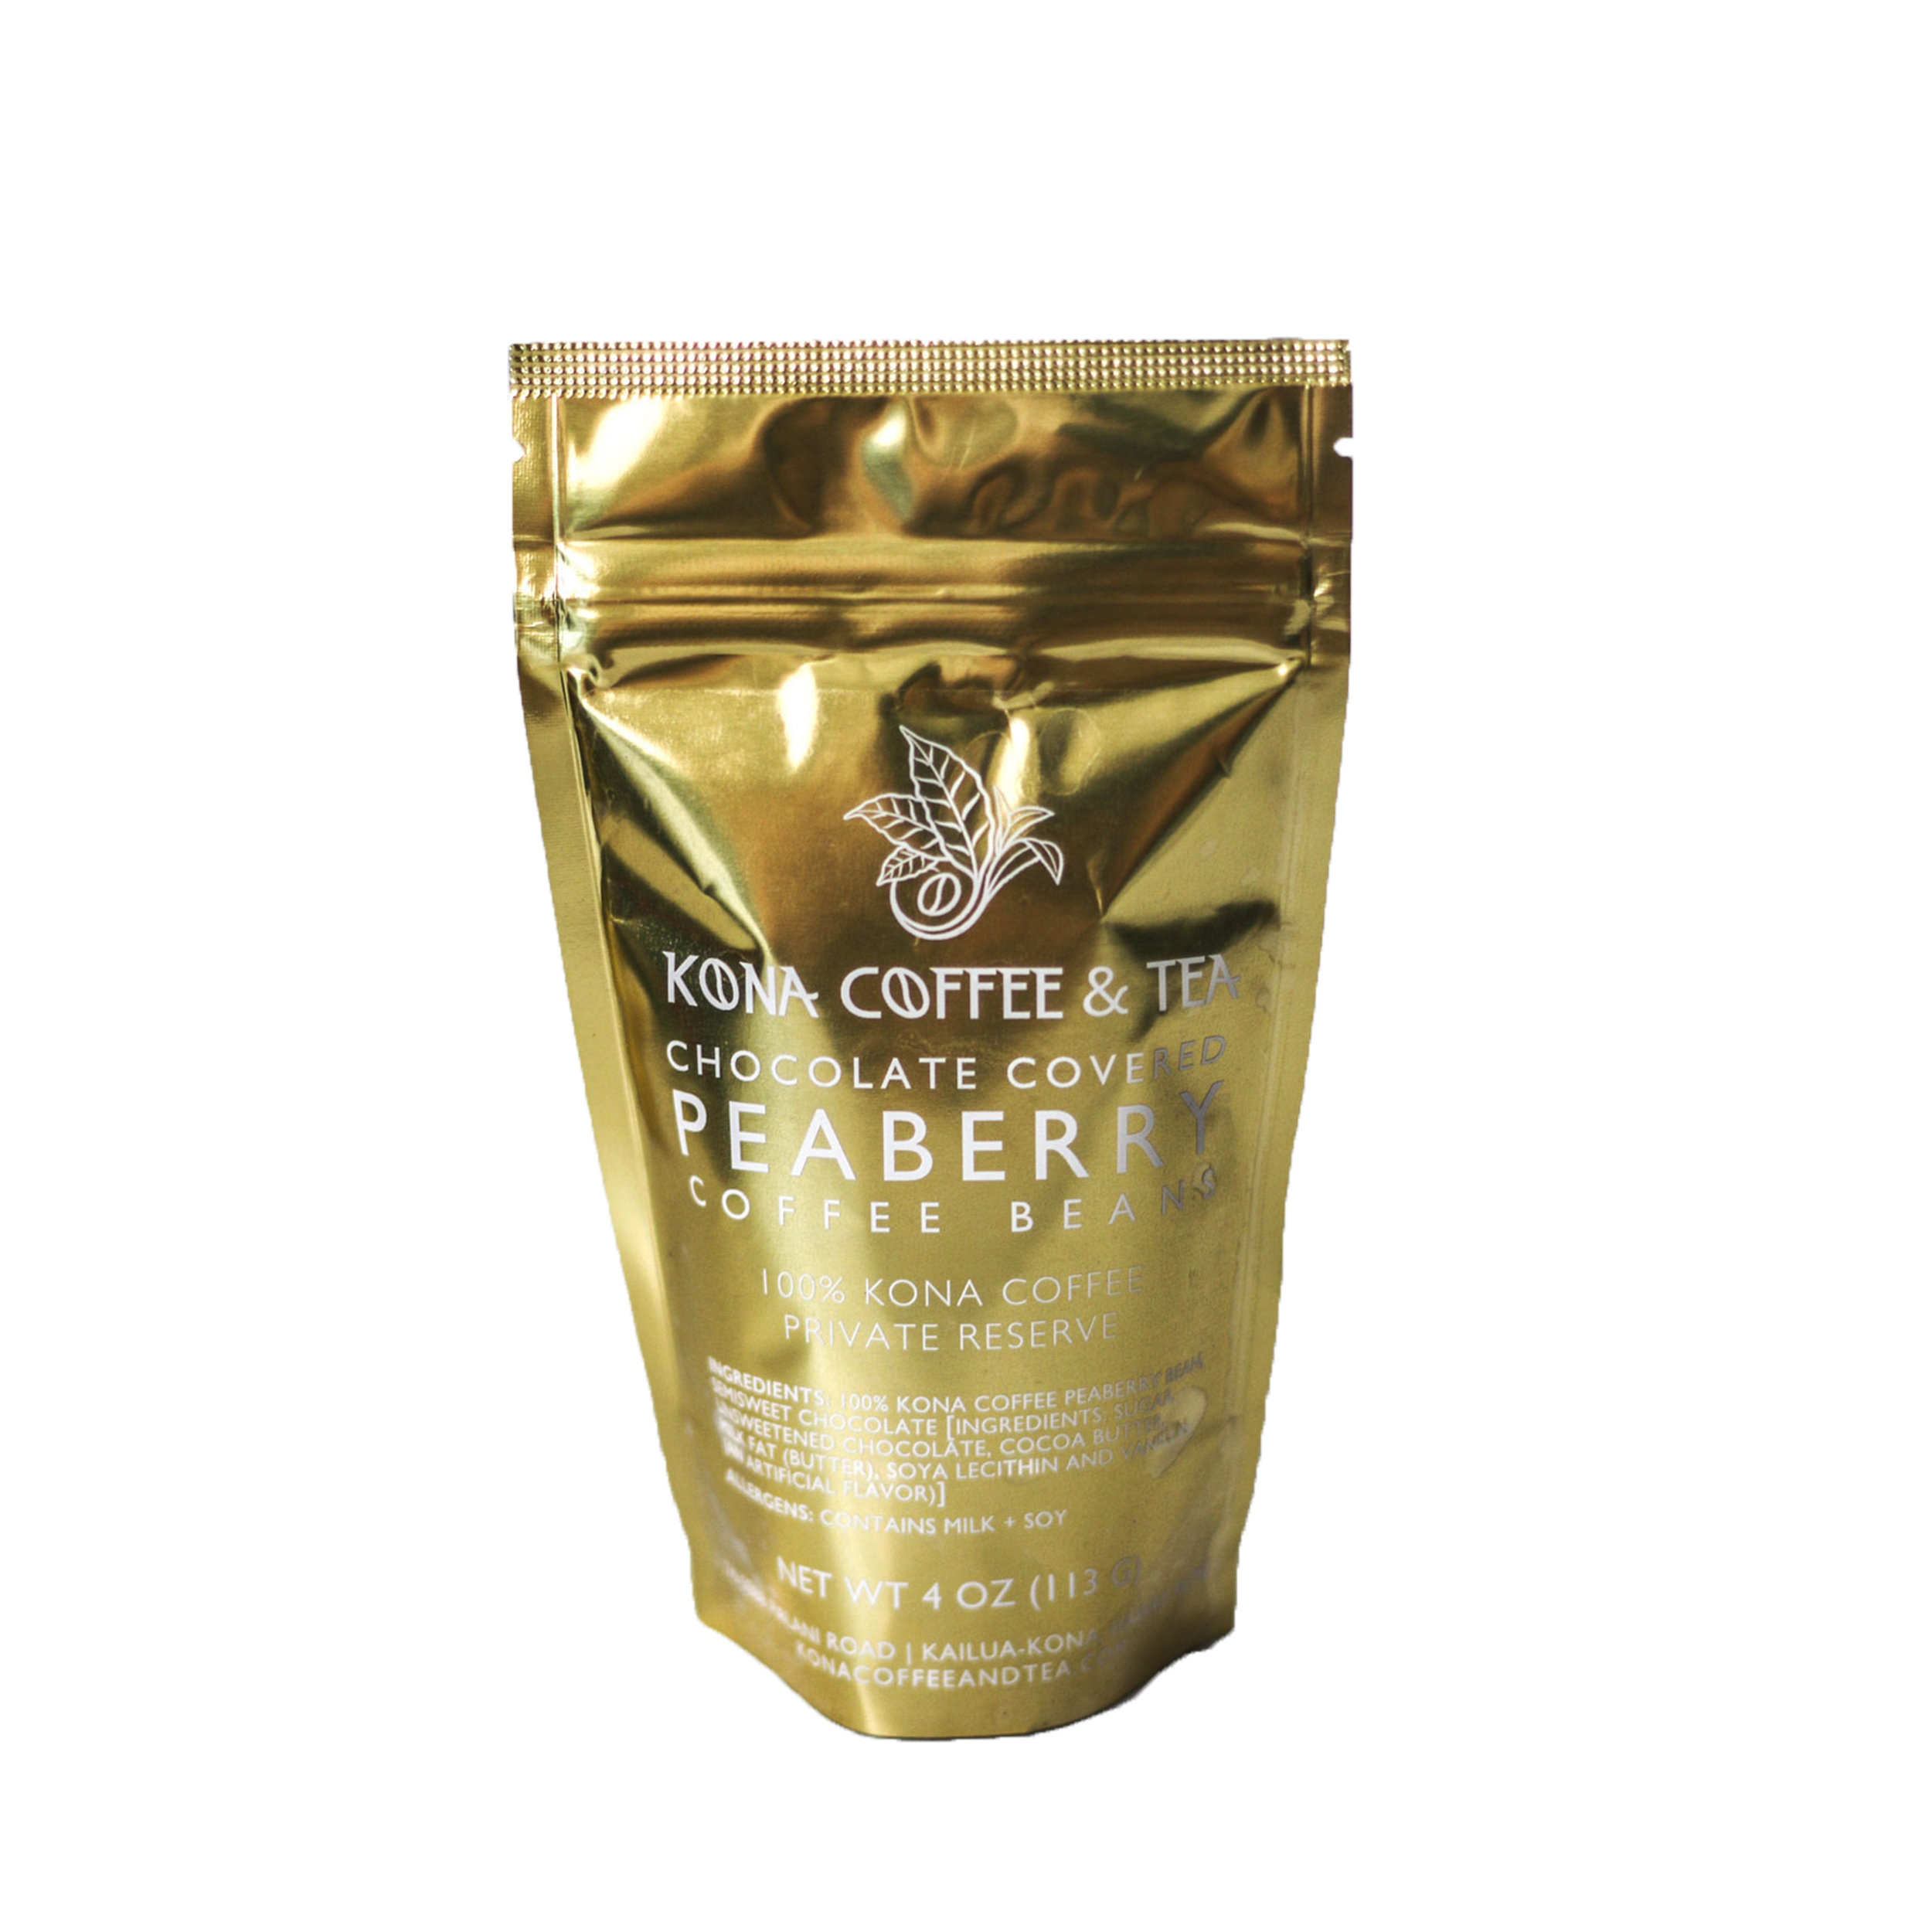 Chocolate Covered Peaberry_Large_3000x3000.jpg